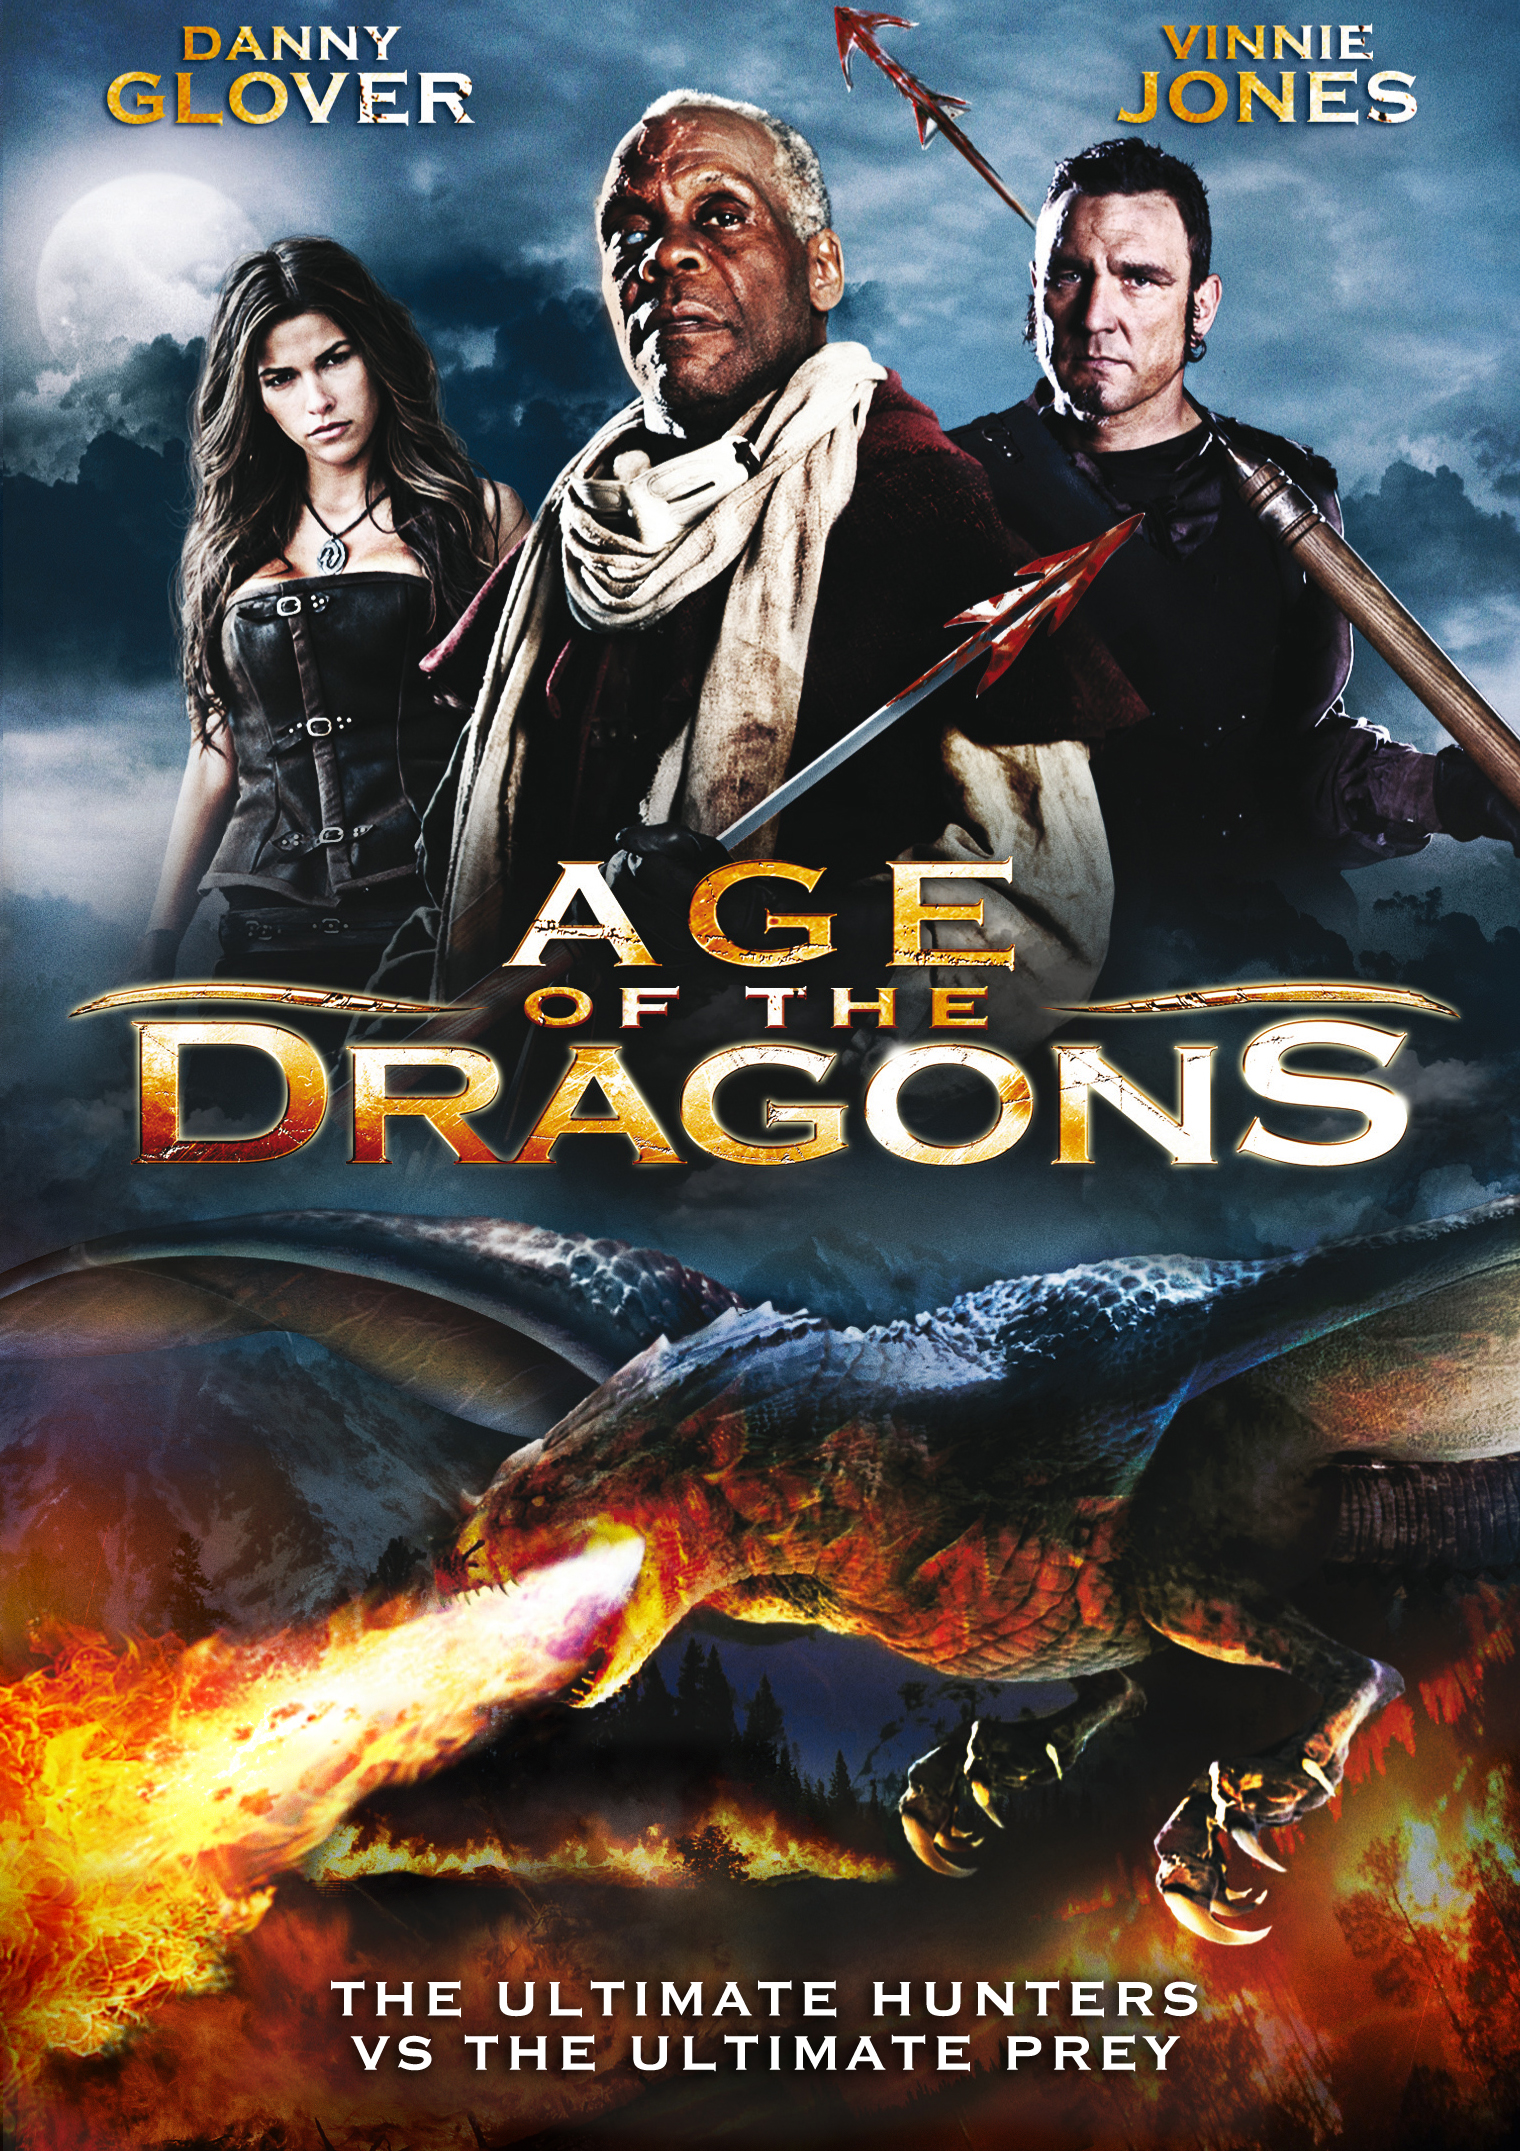 https://goodfilmguide.co.uk/wp-content/uploads/2011/03/age-of-the-dragons-poster.jpg